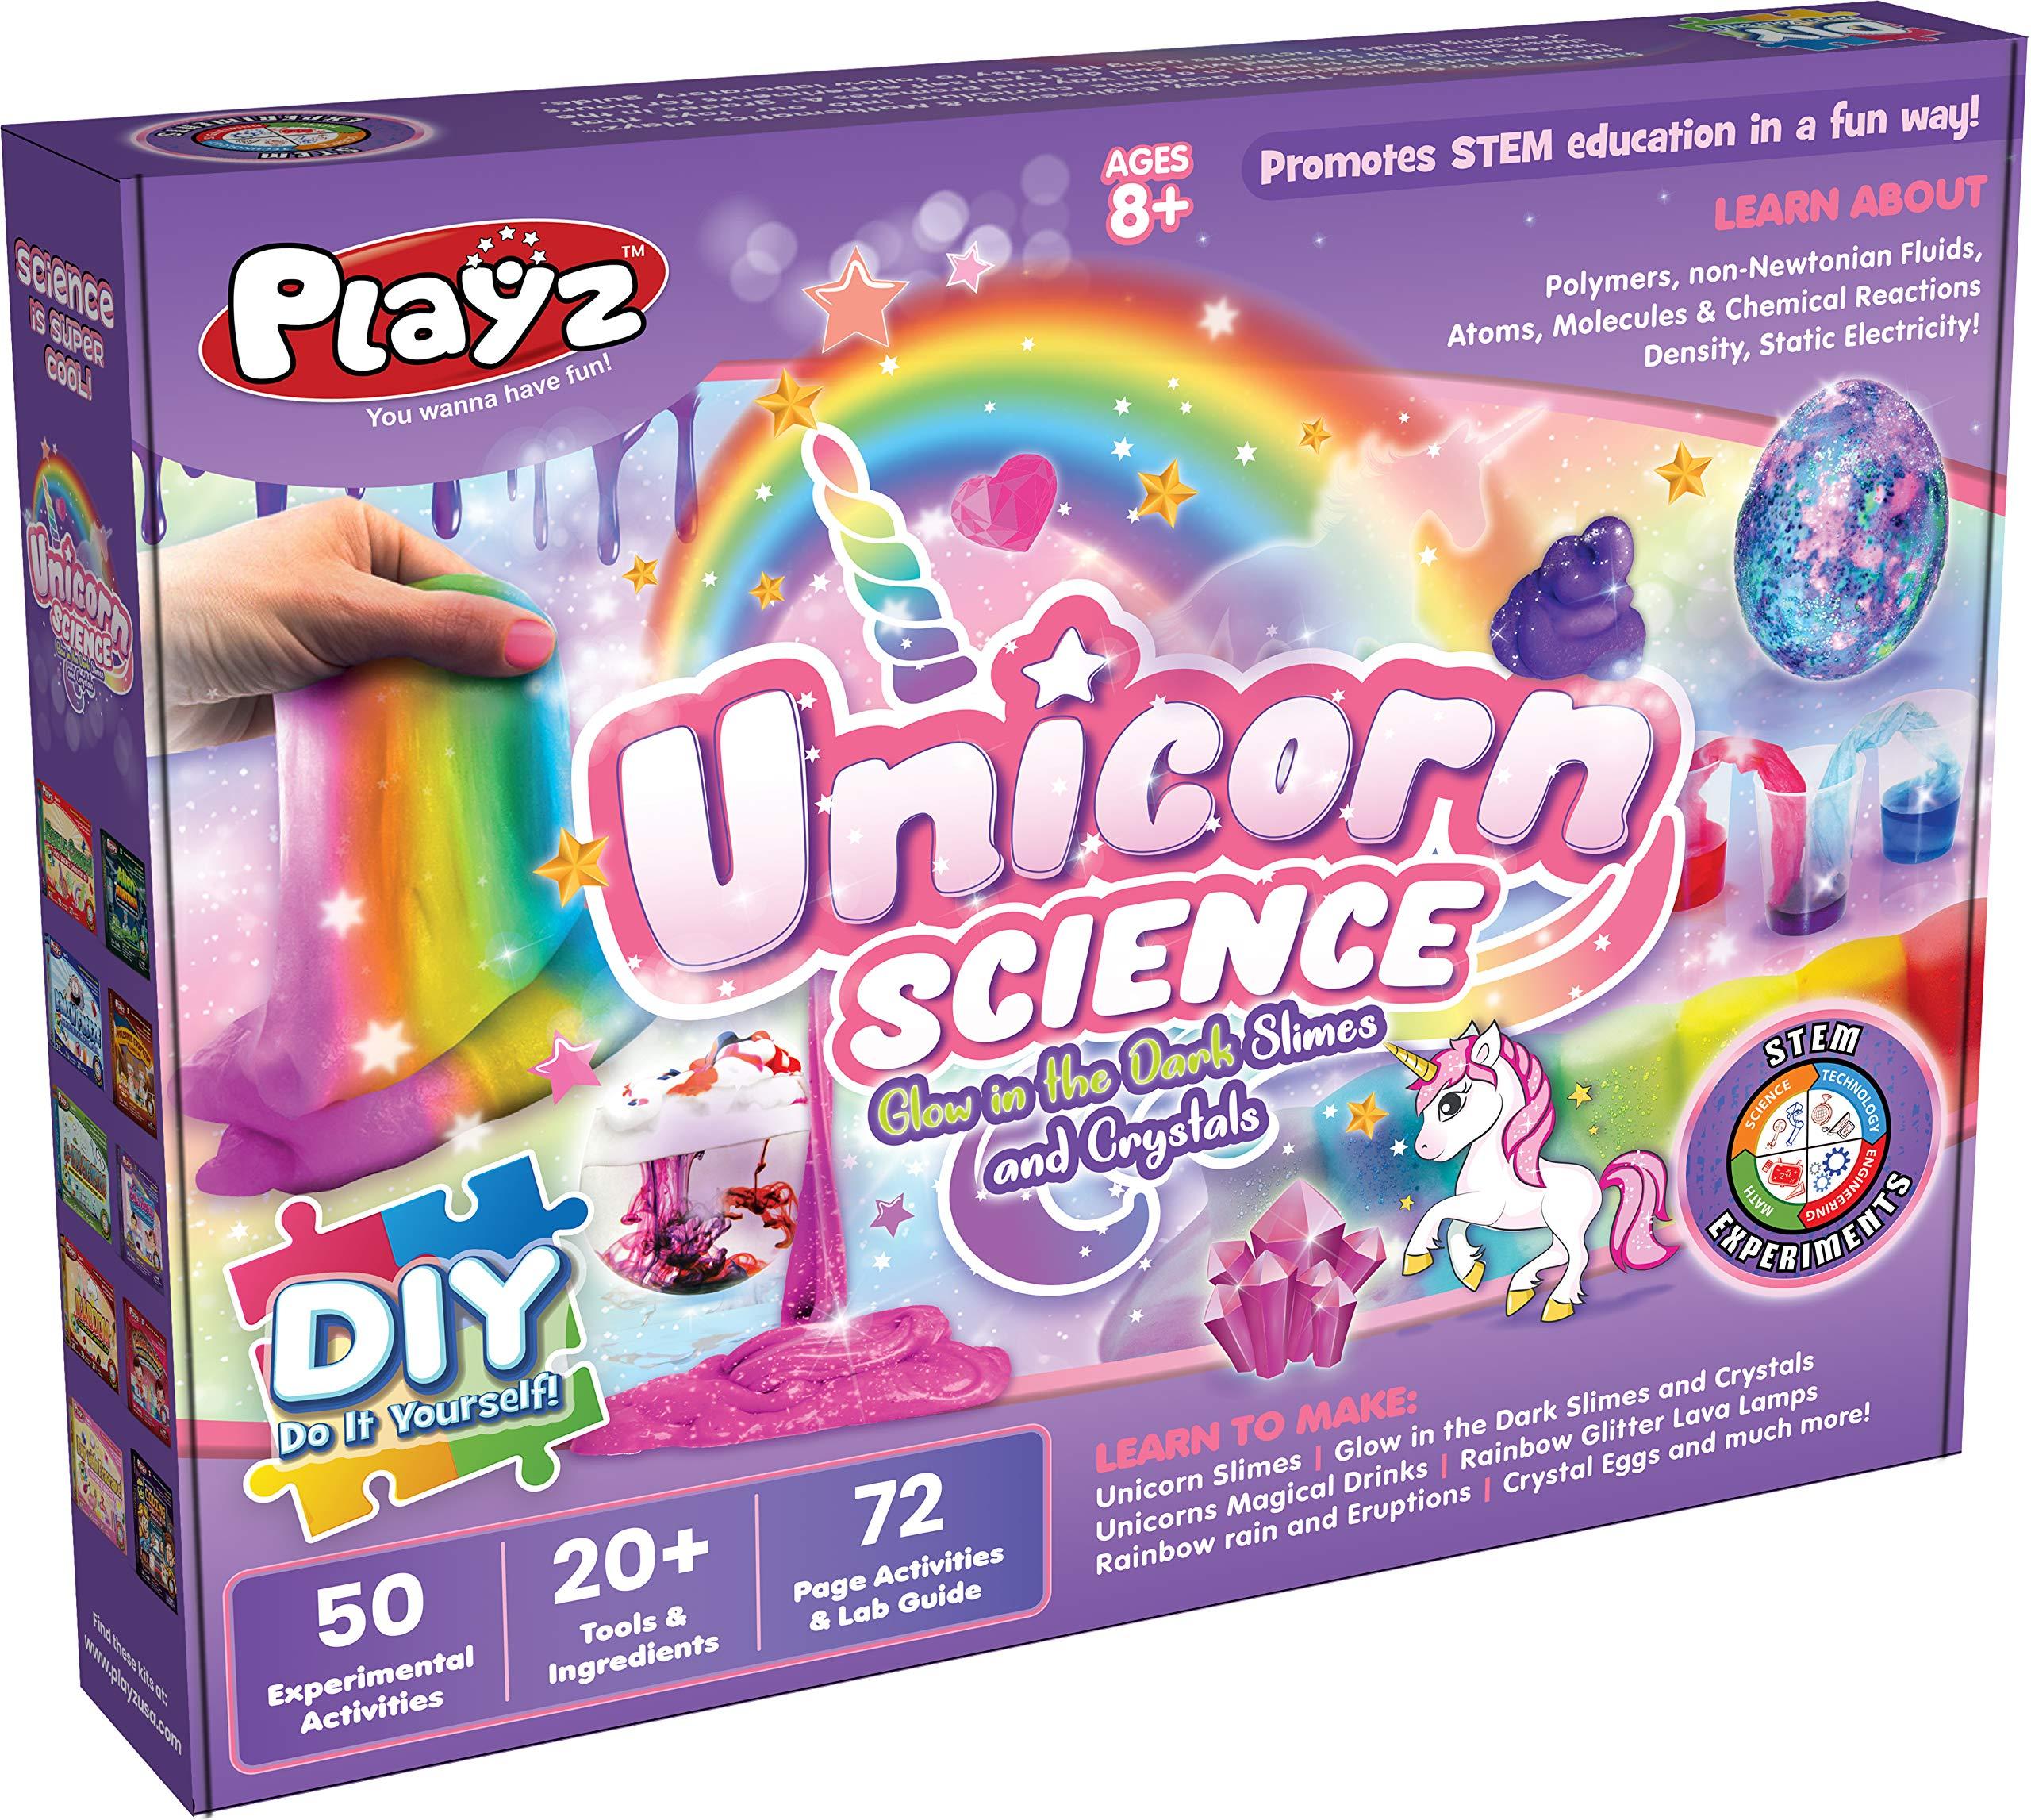 Playz Unicorn Slime & Crystals Science Kit Gift for Girls & Boys with 50+ STEM Experiments to Make Glow in The Dark Unicorn Poop, Snot, Fluffy Slime, Crystals, Putty, Arts & Crafts for Kids Age 8-12 by Playz